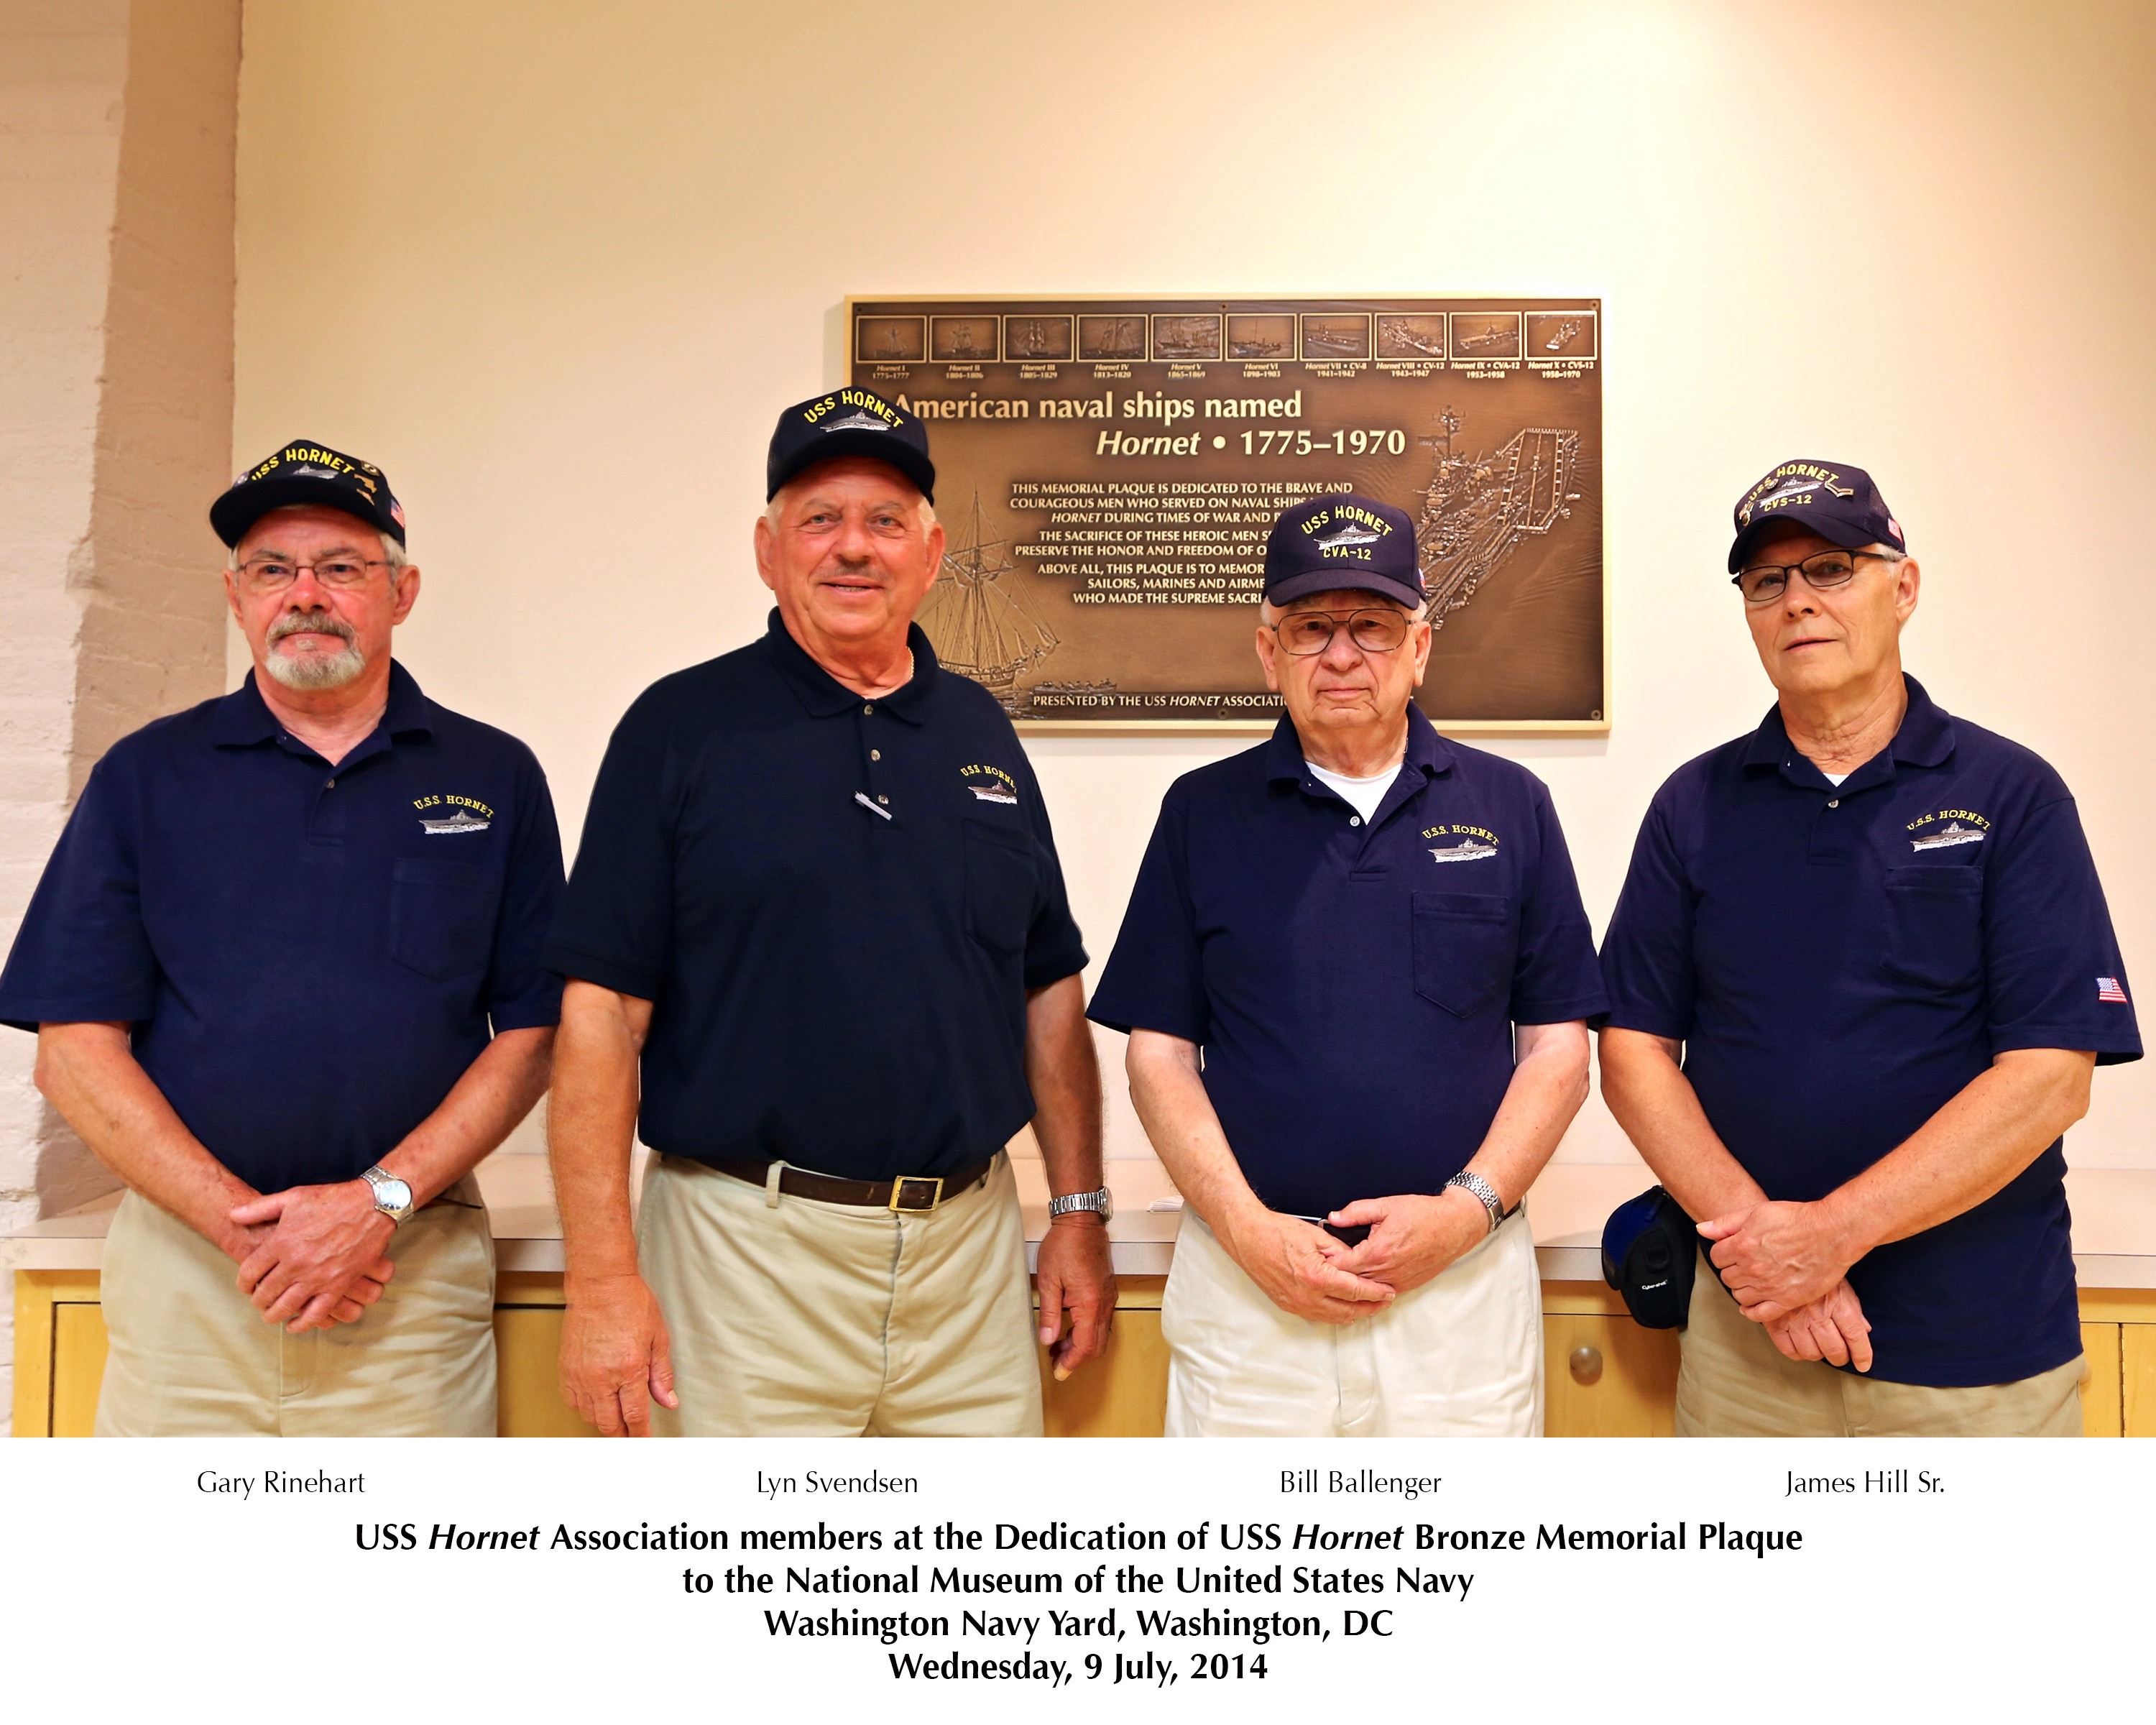 Members of USS Hornet Association